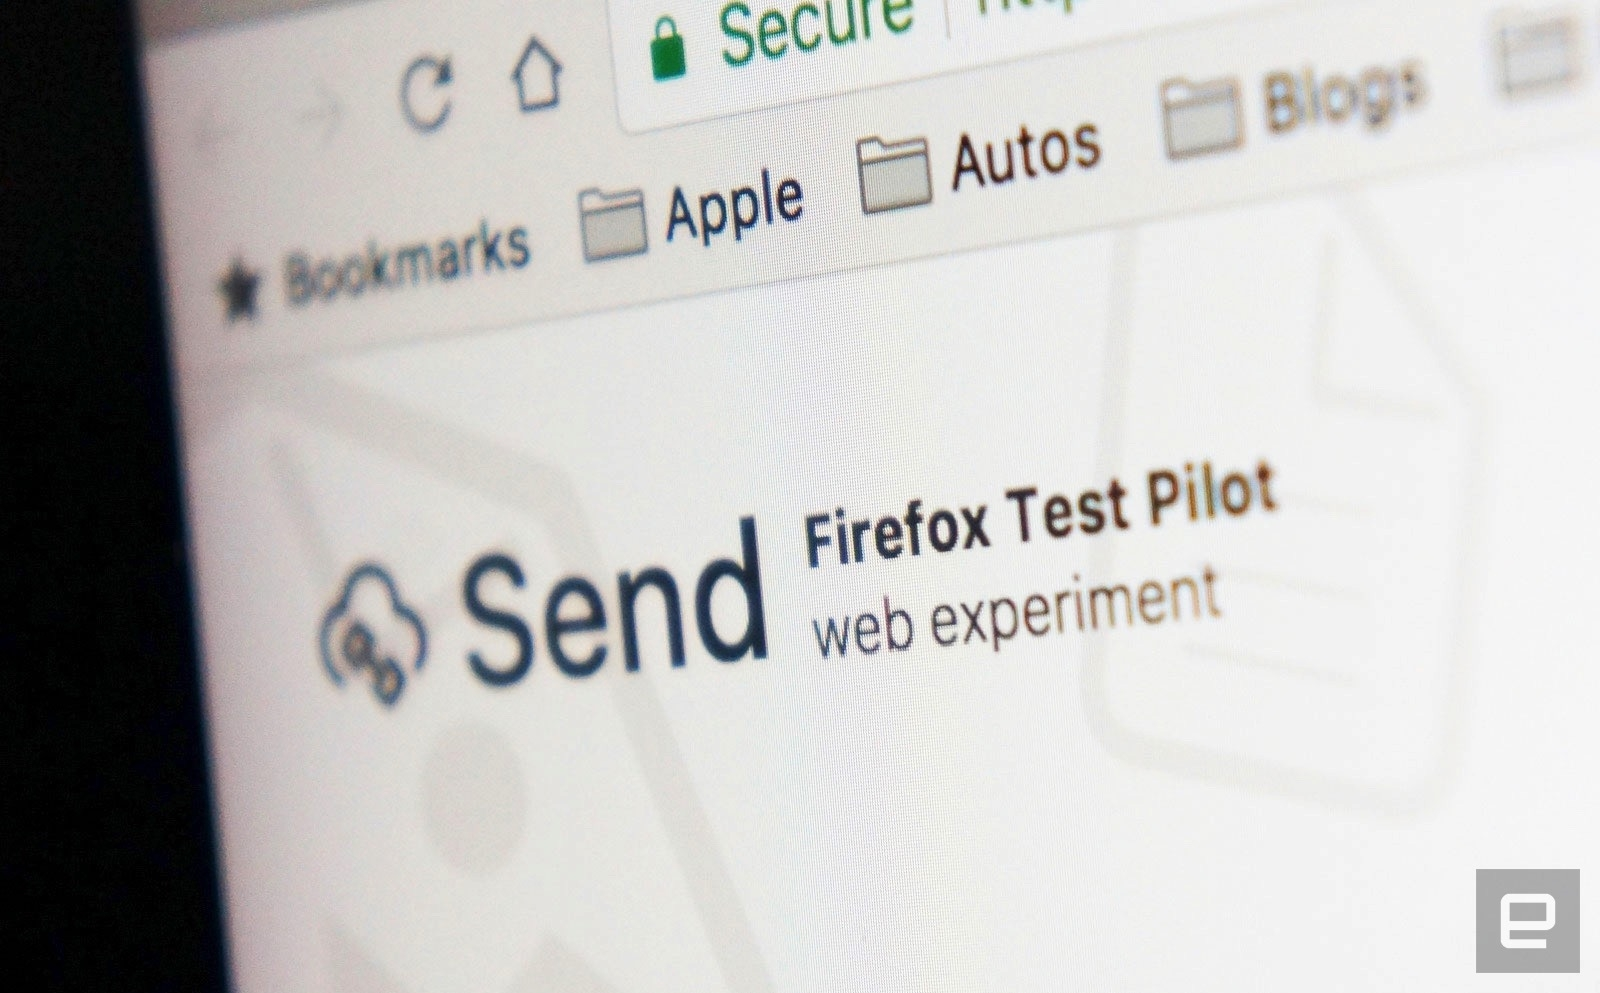 Mozilla file sharing test wipes files after one download | DeviceDaily.com